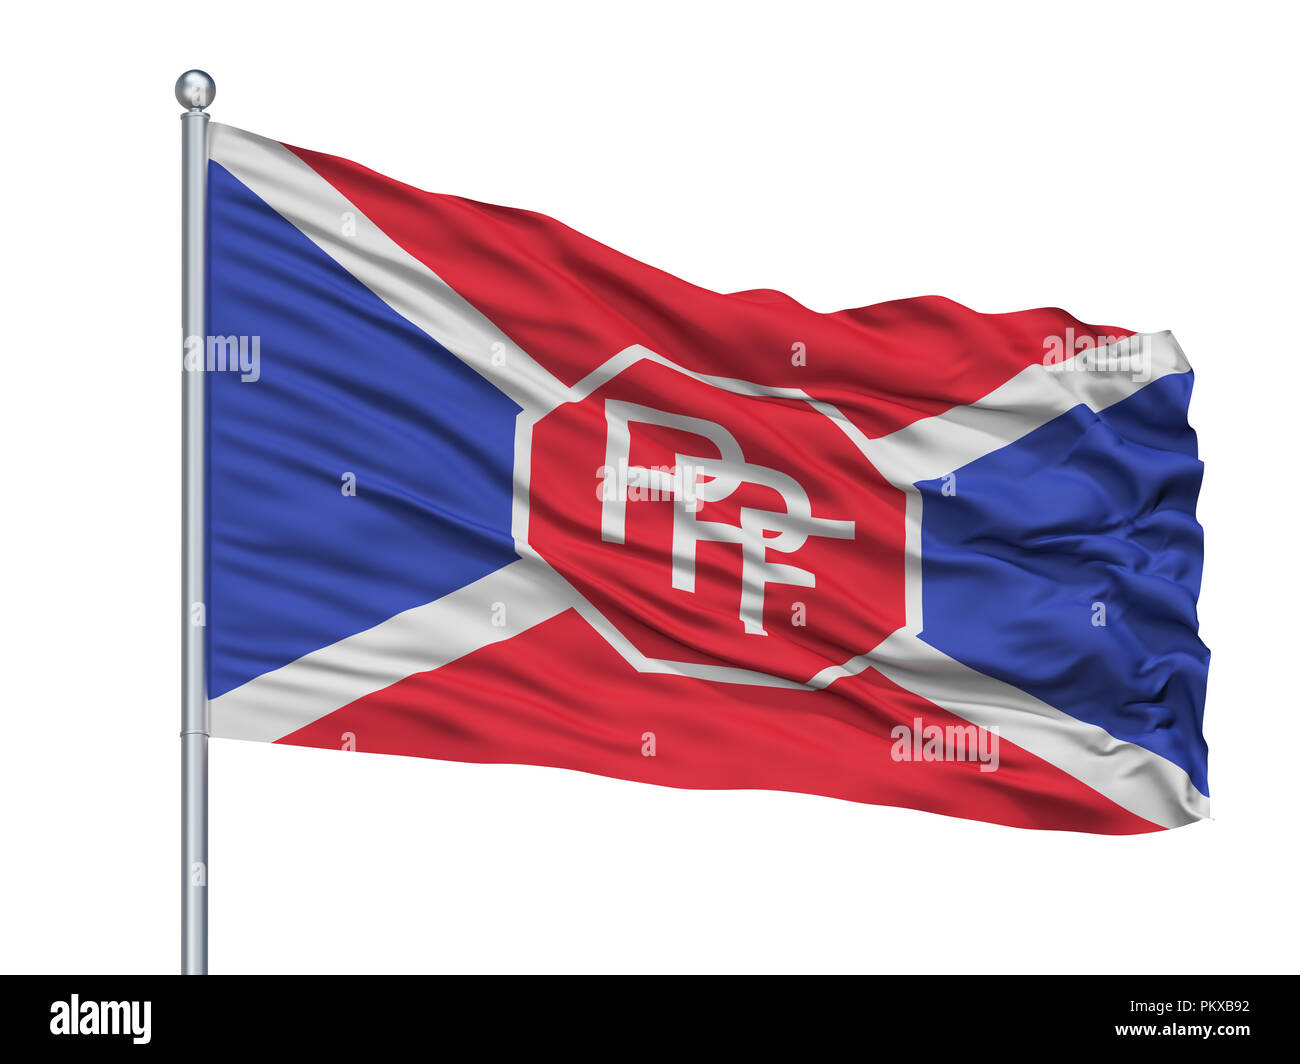 Ppf Flag On Flagpole, Isolated On White Background, 3D Rendering - Stock Image